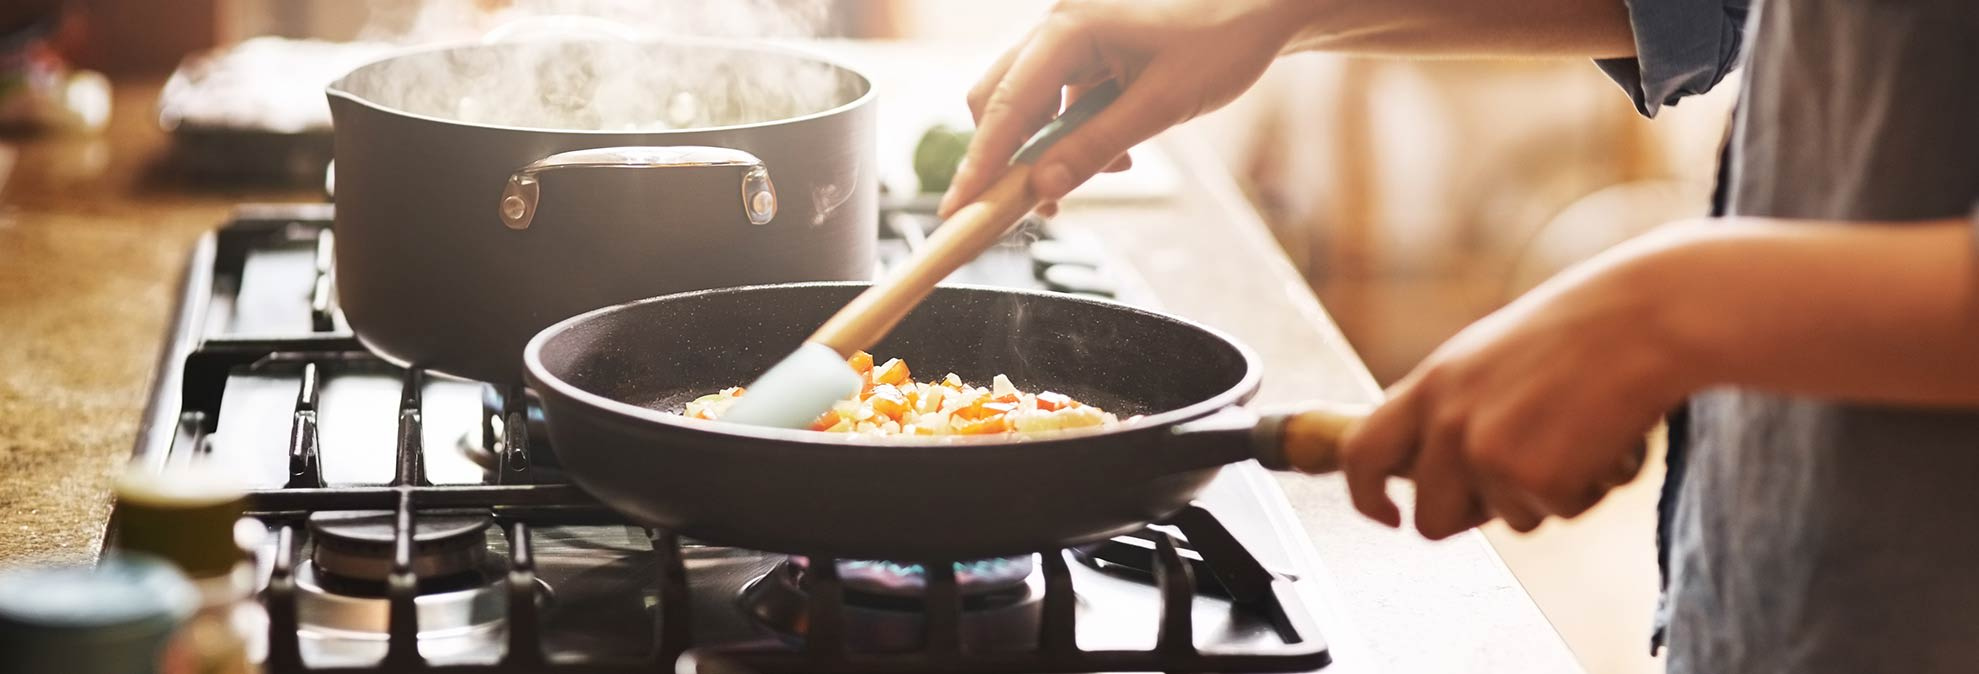 best cookware sets of 2018 consumer reports. Black Bedroom Furniture Sets. Home Design Ideas